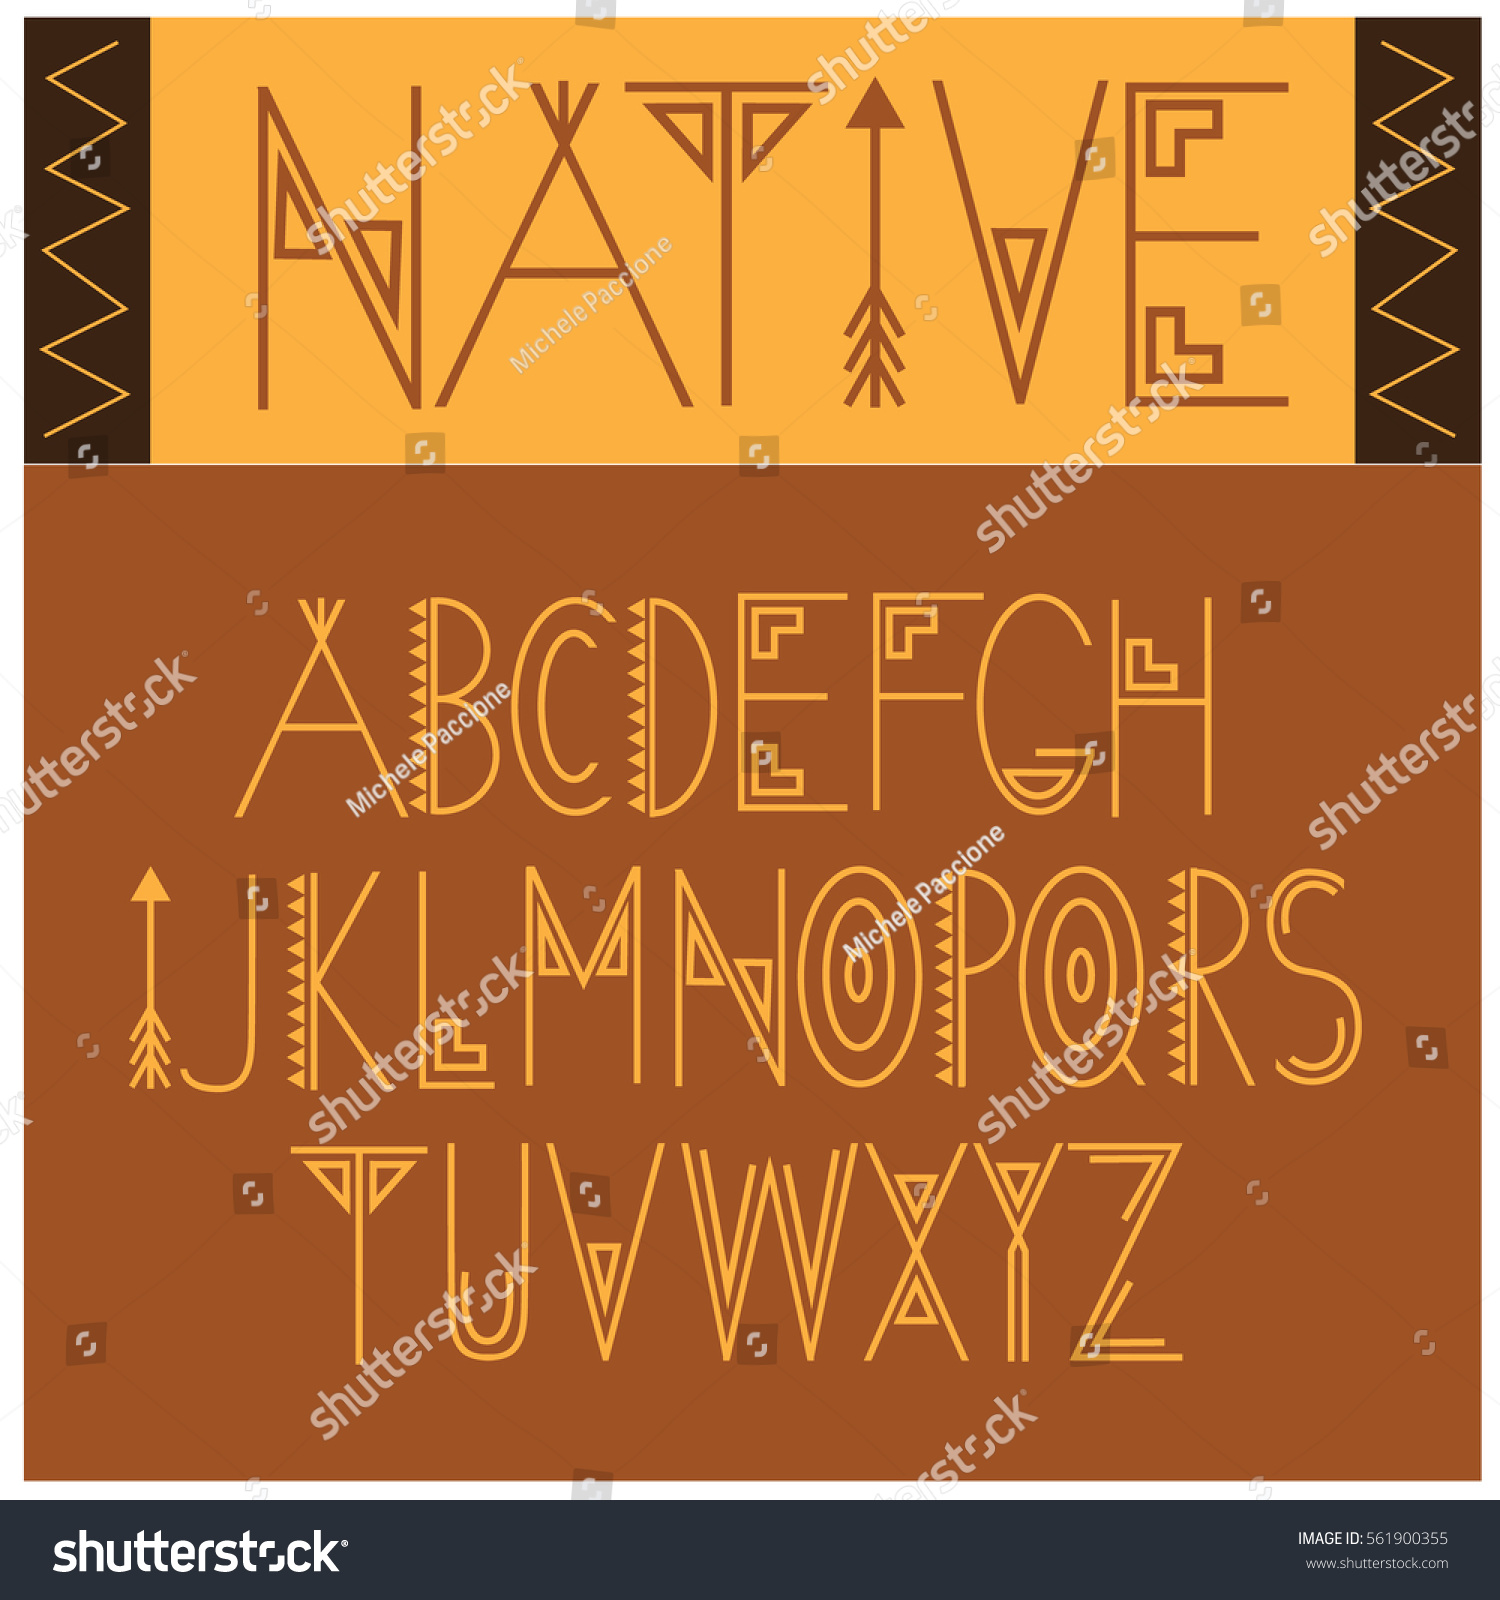 Native font symbol icon alphabet through stock vector 561900355 native font symbol icon alphabet a through z an interpretation of native american or aboriginal biocorpaavc Image collections